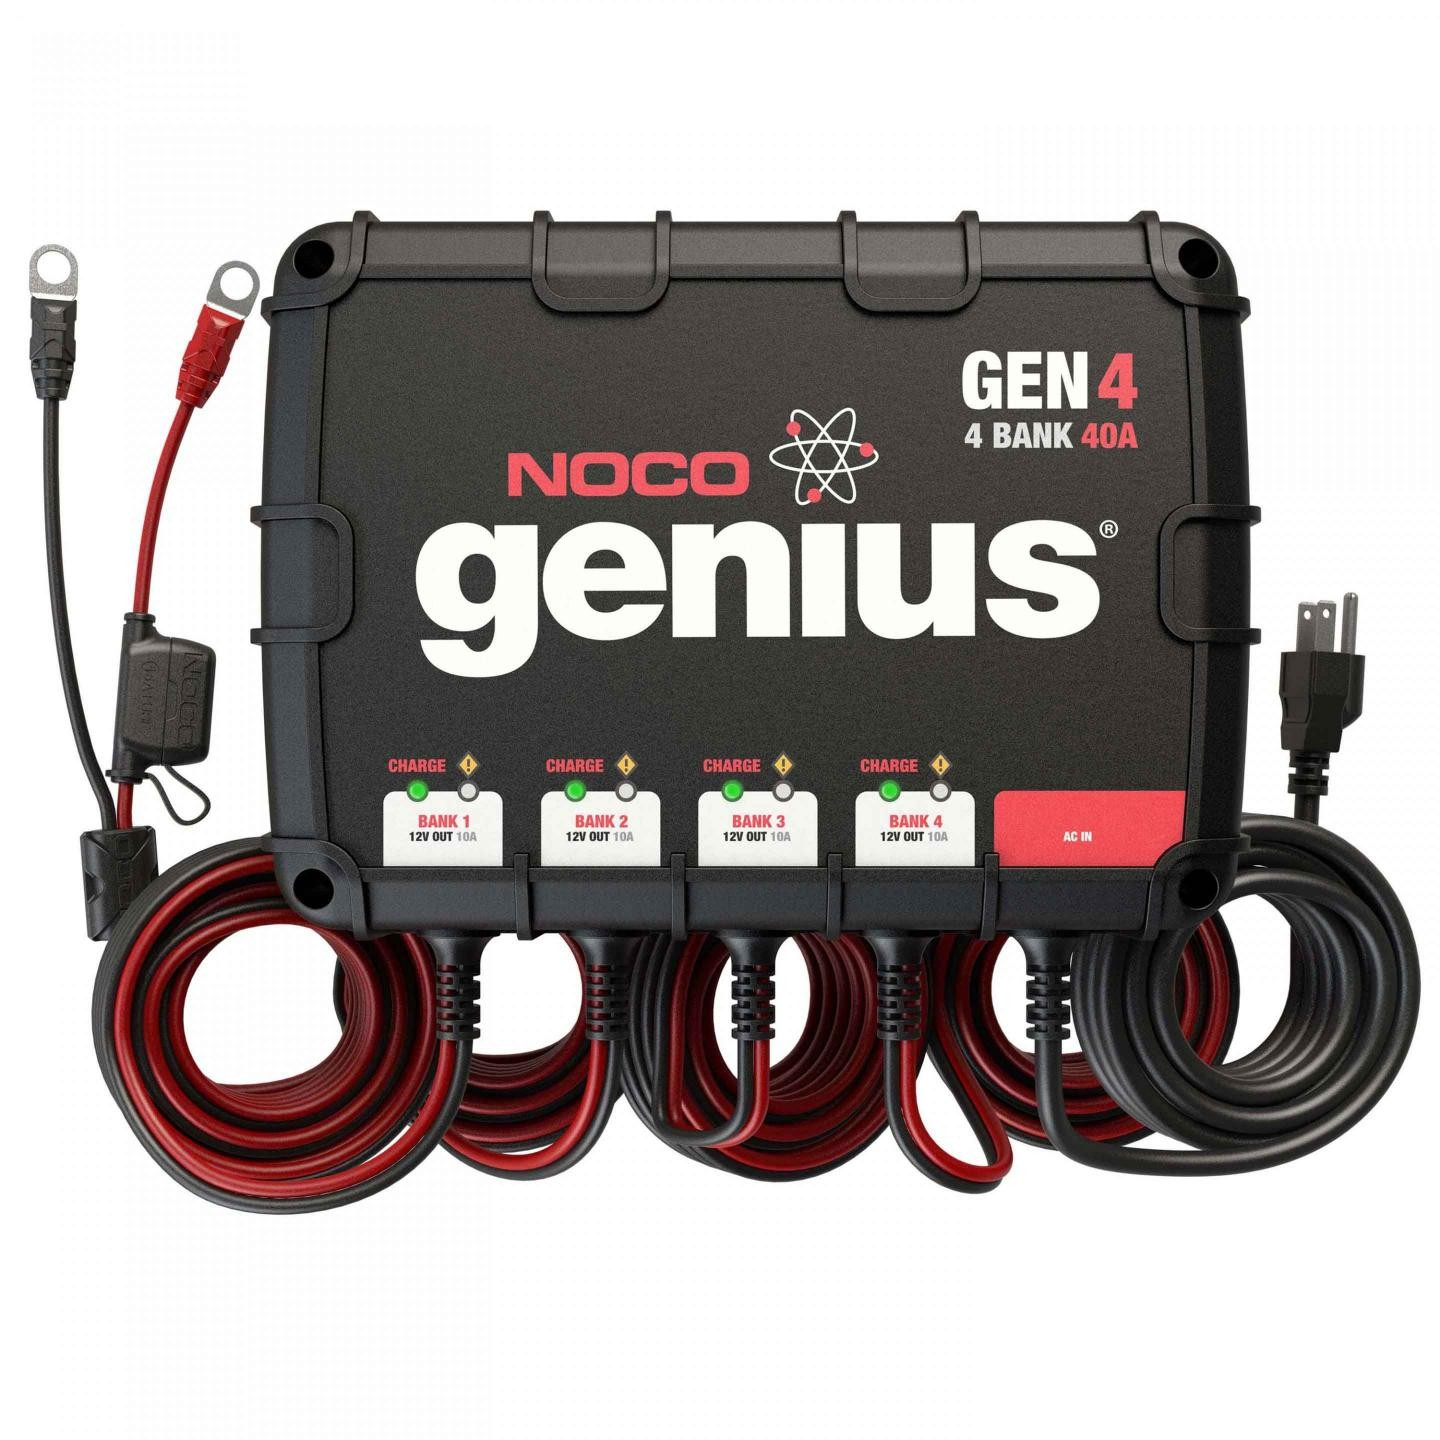 Deep Cycle Marine Battery Charger >> 4 Bank 40a On Board Battery Charger